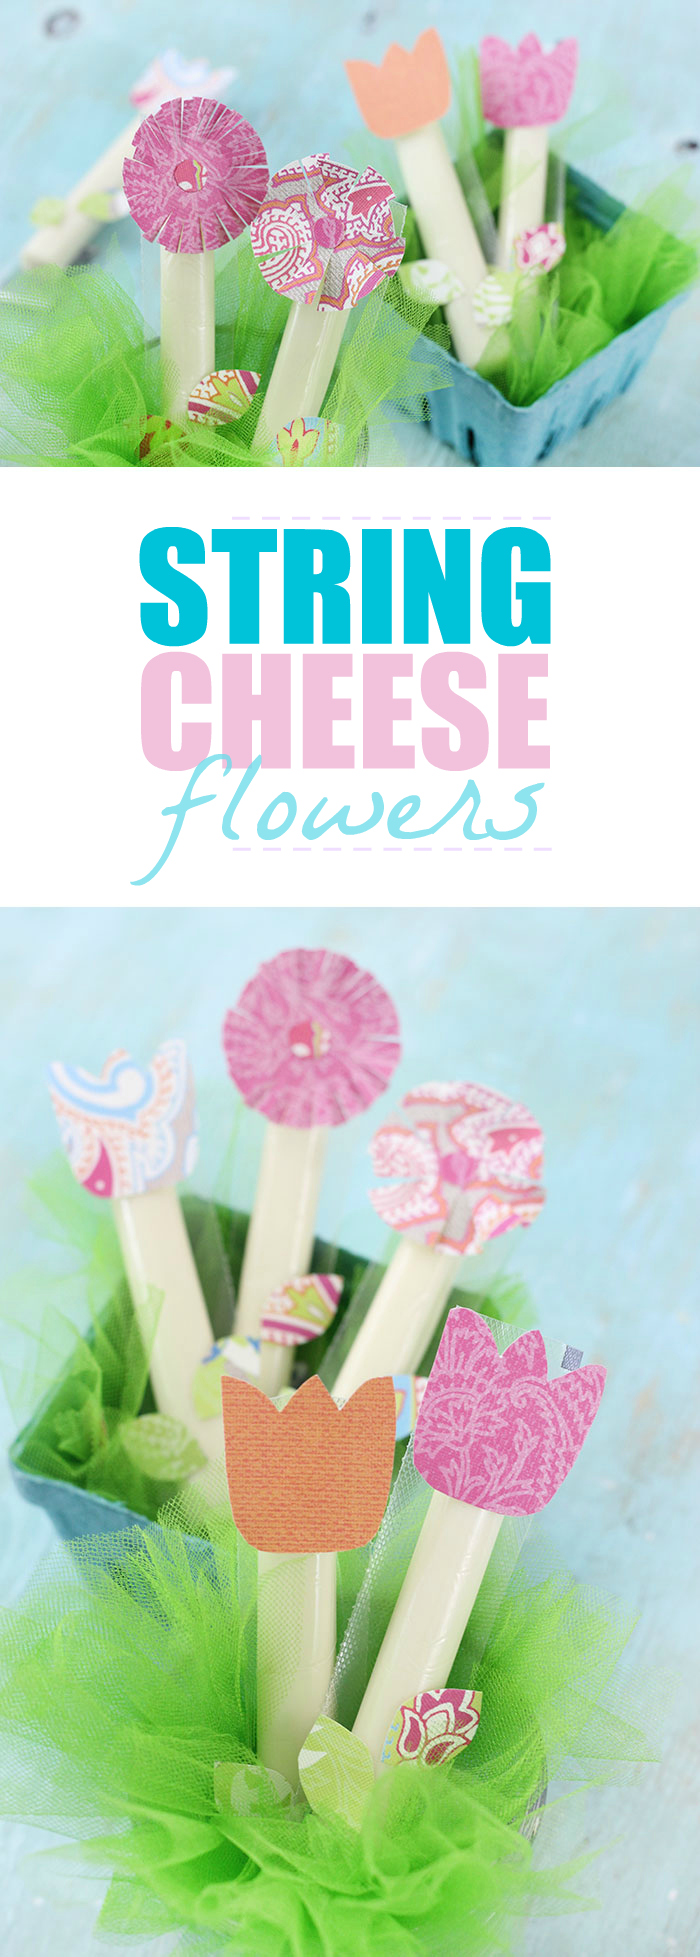 String Cheese Flowers. Click to see how these cute flower treats are made. They'll make snack time extra fun in just minutes.